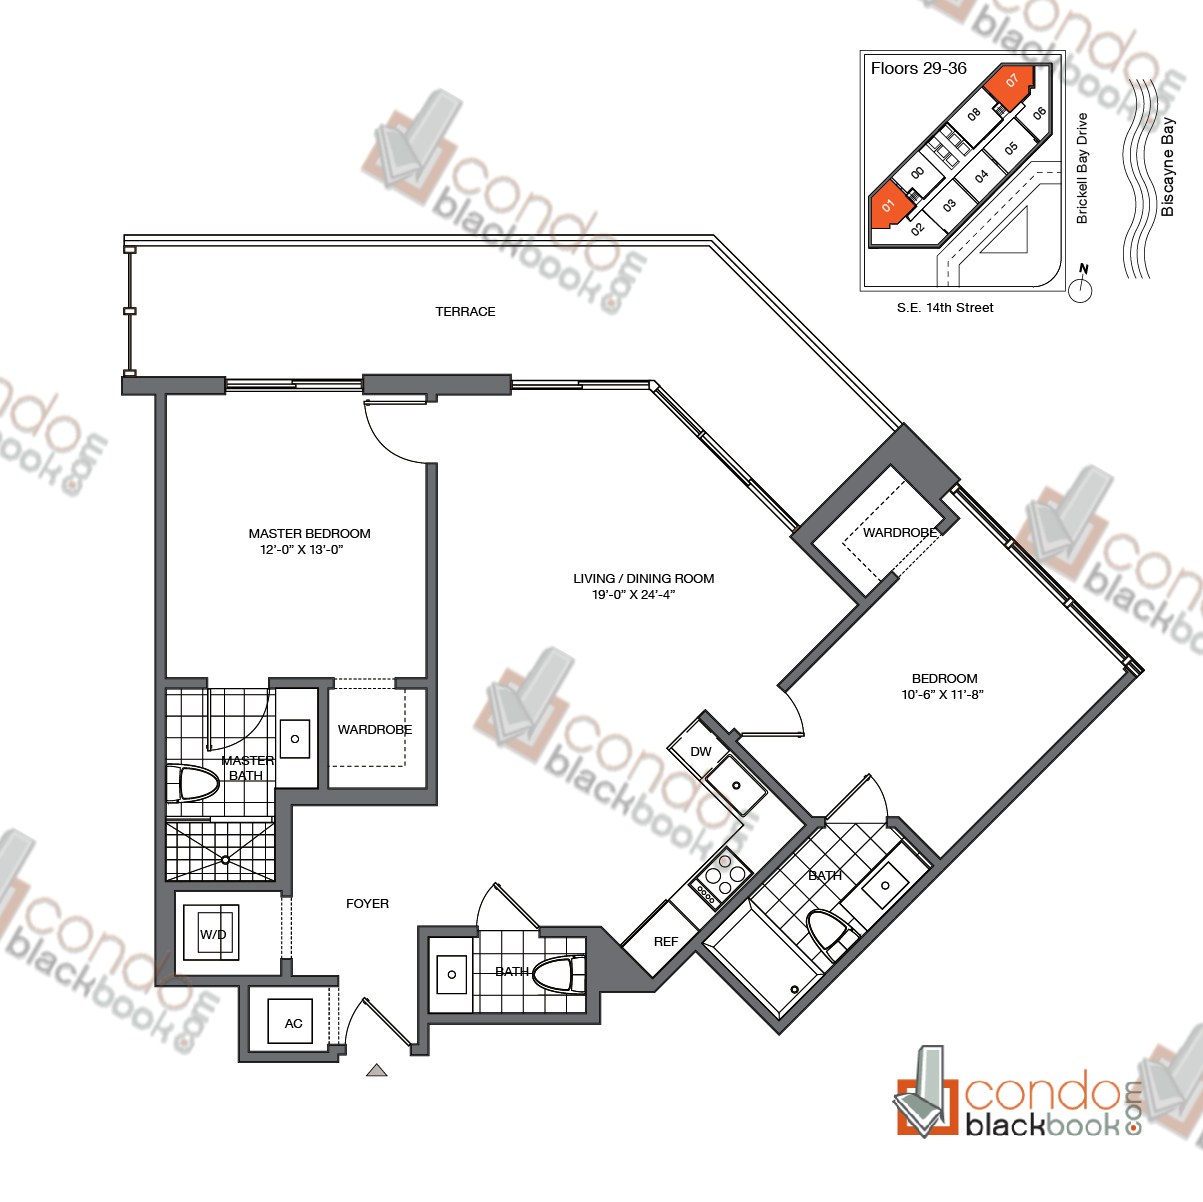 Floor plan for Brickell House Brickell Miami, model B6_29-36, line 01, 07, 2/2.5 bedrooms, 1,105 sq ft